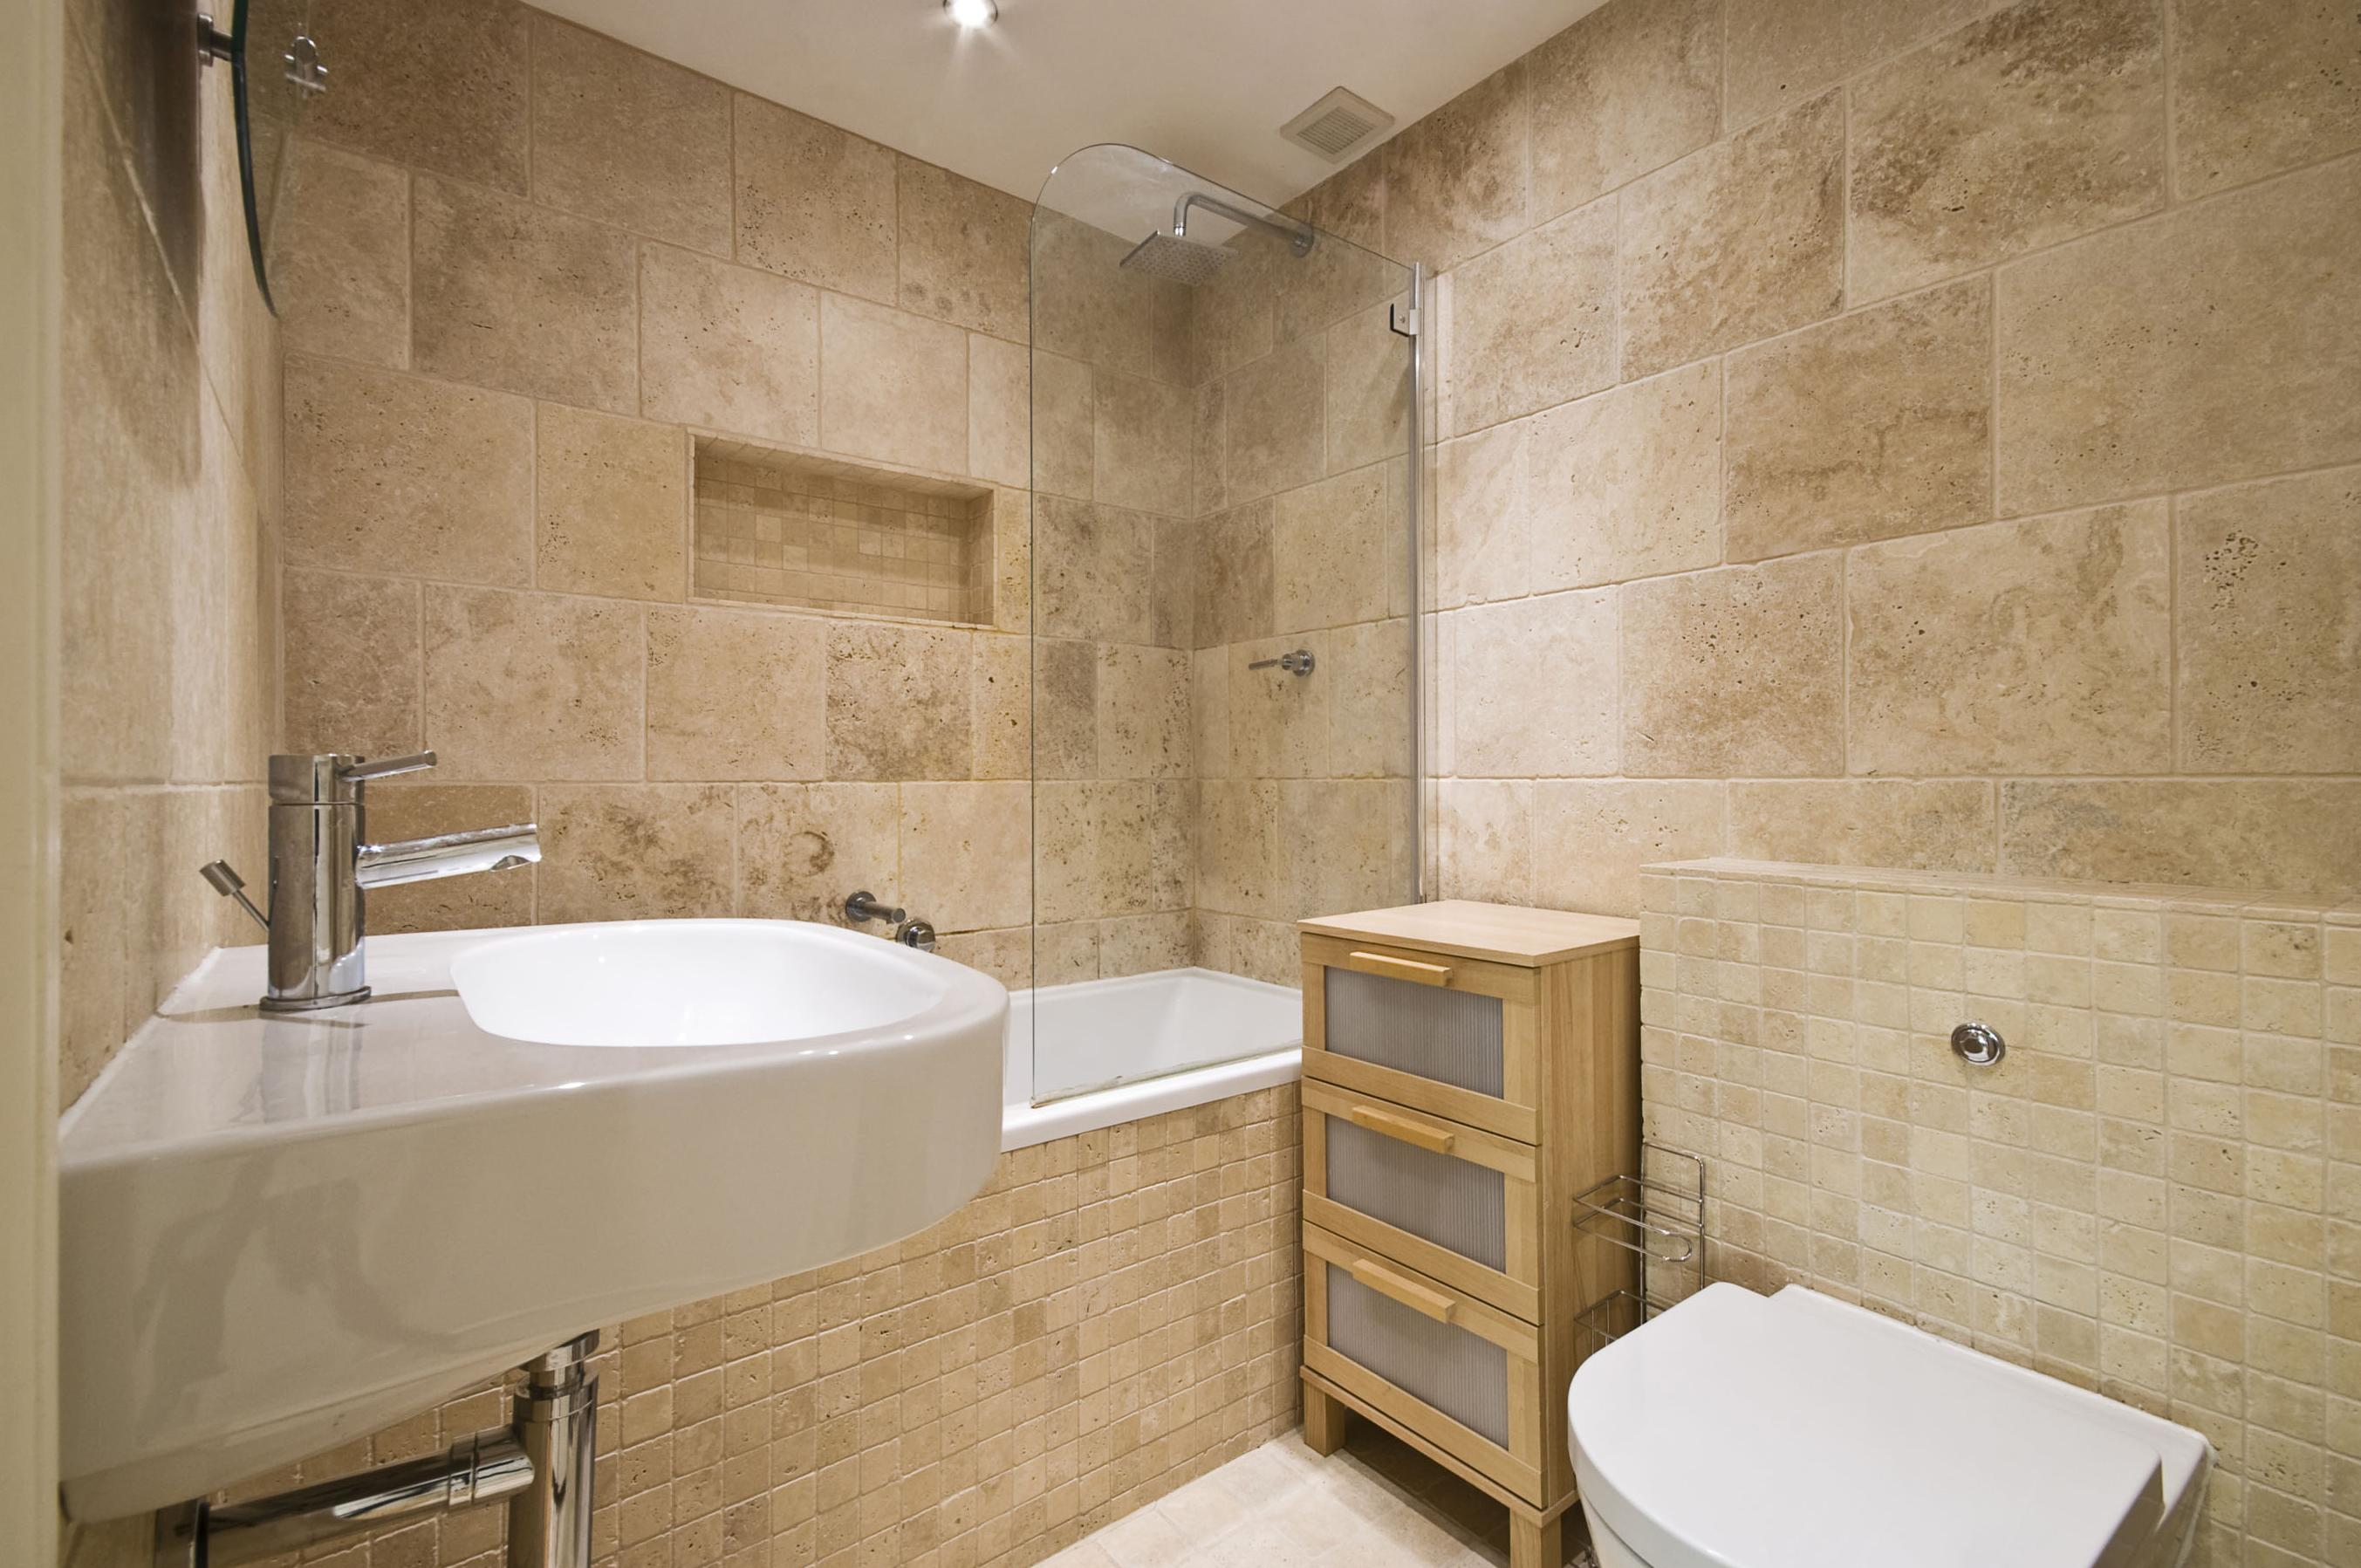 Ask the Builder: Before you tile your shower, do the homework | The ...